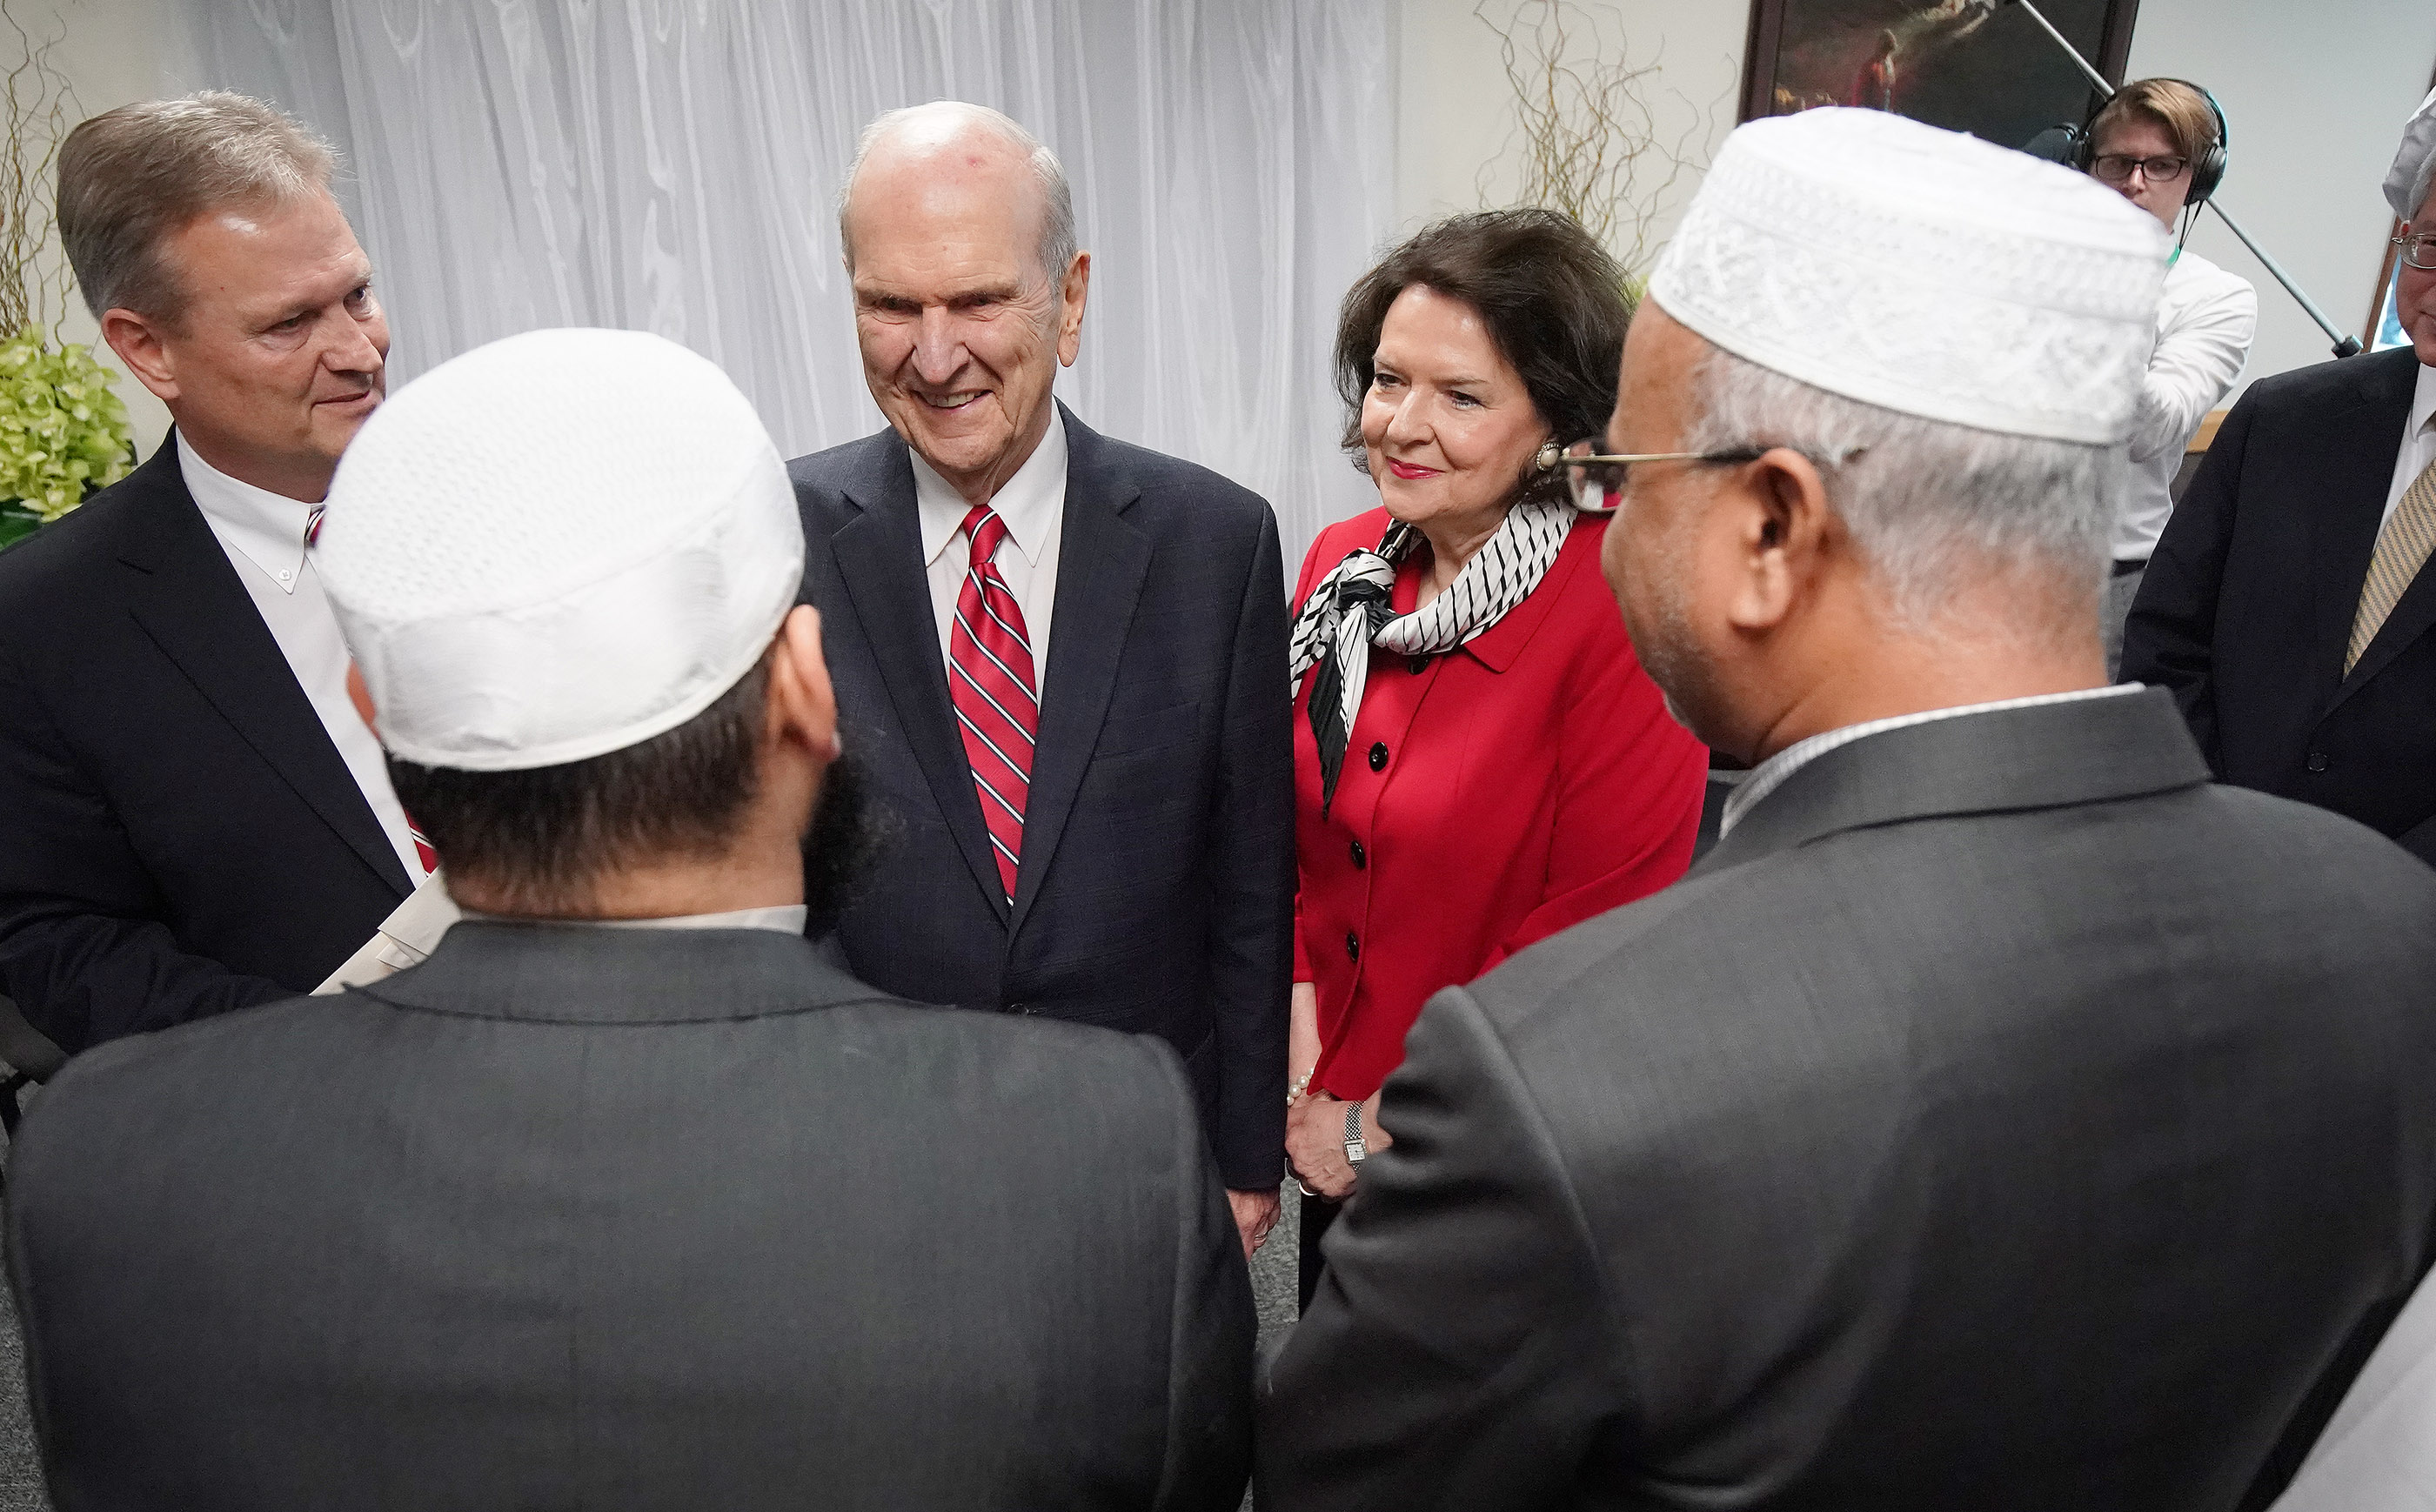 President Russell M. Nelson of The Church of Jesus Christ of Latter-day Saints and his wife, Sister Wendy Nelson, meet with imams and a victim in Auckland, New Zealand, on May 21, 2019, from two mosques that were recently attacked. Two imams represented the Al Noor and Linwood mosques, where innocent worshippers were gunned down March 15 in Christchurch.